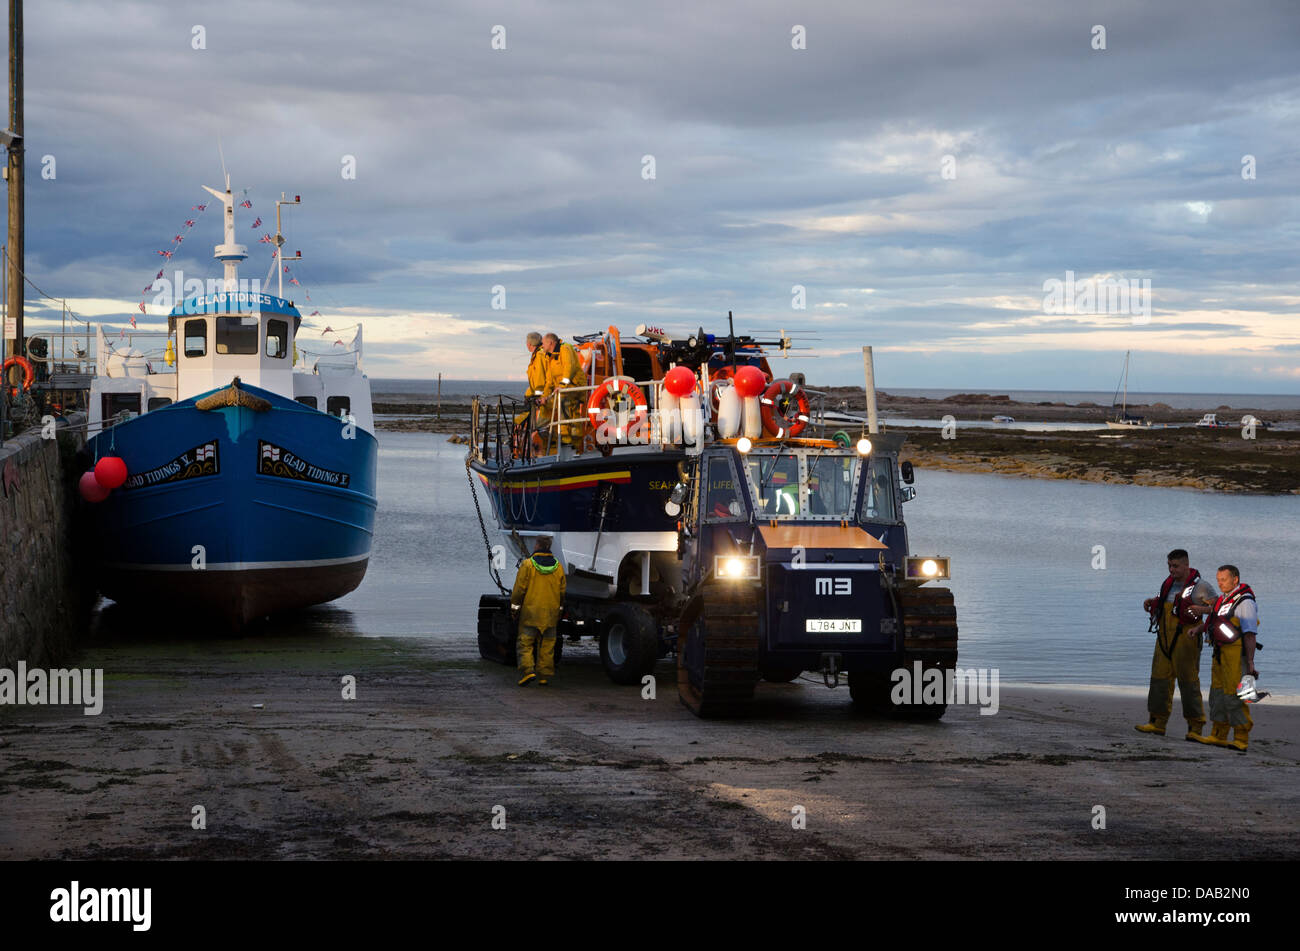 RNLI lifeboat grace darling recovered by tractor from sea following practice operation seahouses harbour northumberland - Stock Image